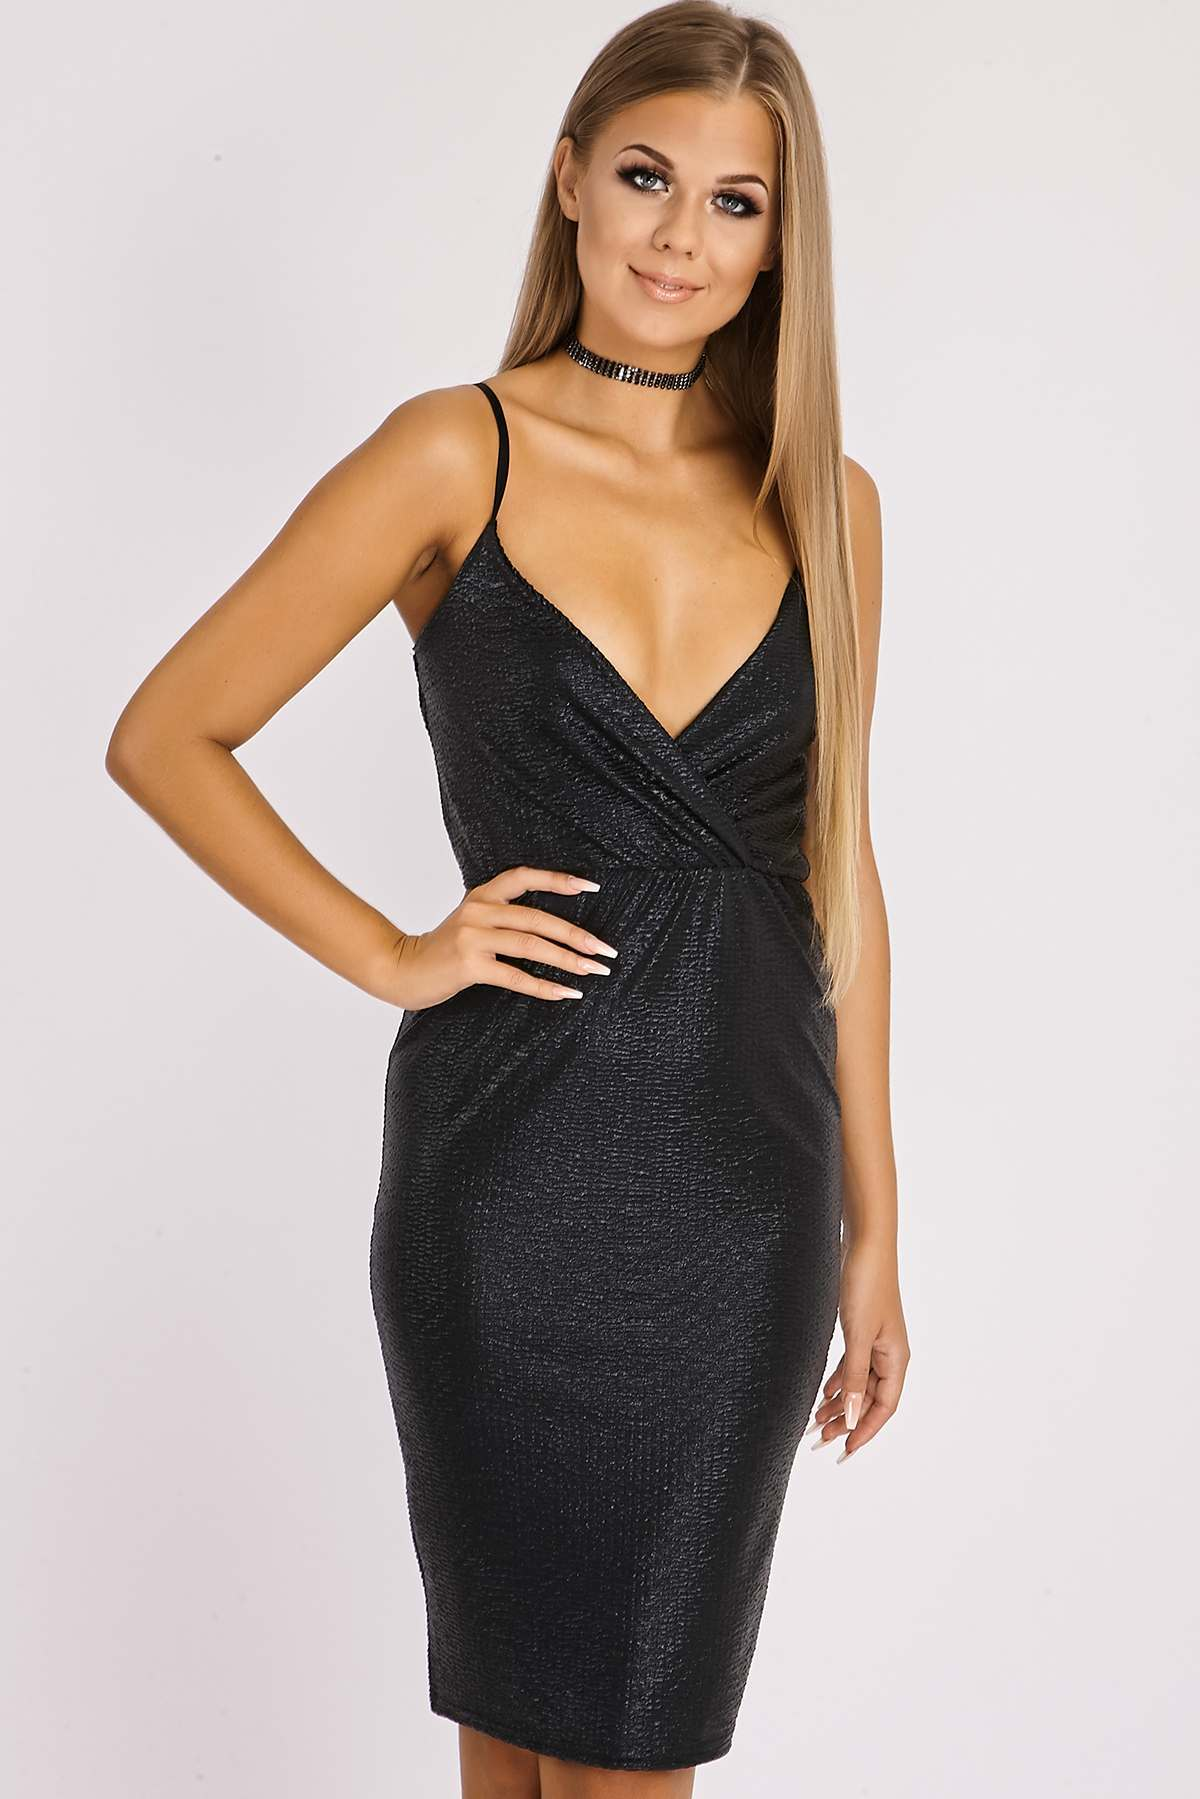 Black Dresses  Gianna Black Metallic Wrap Cami Dress